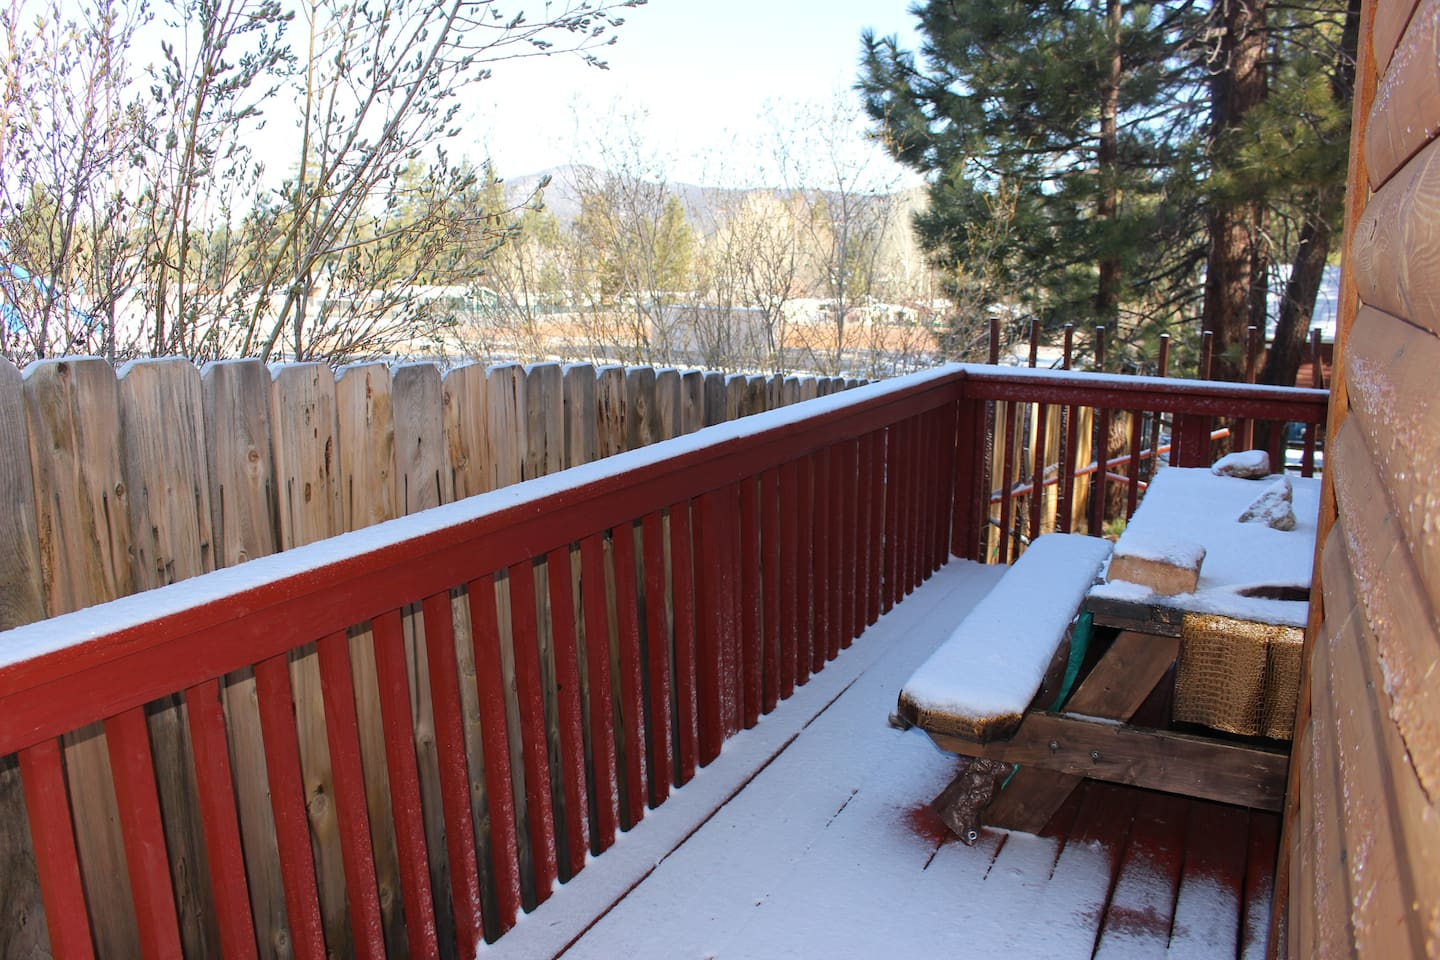 Lakeview porch with picnic table